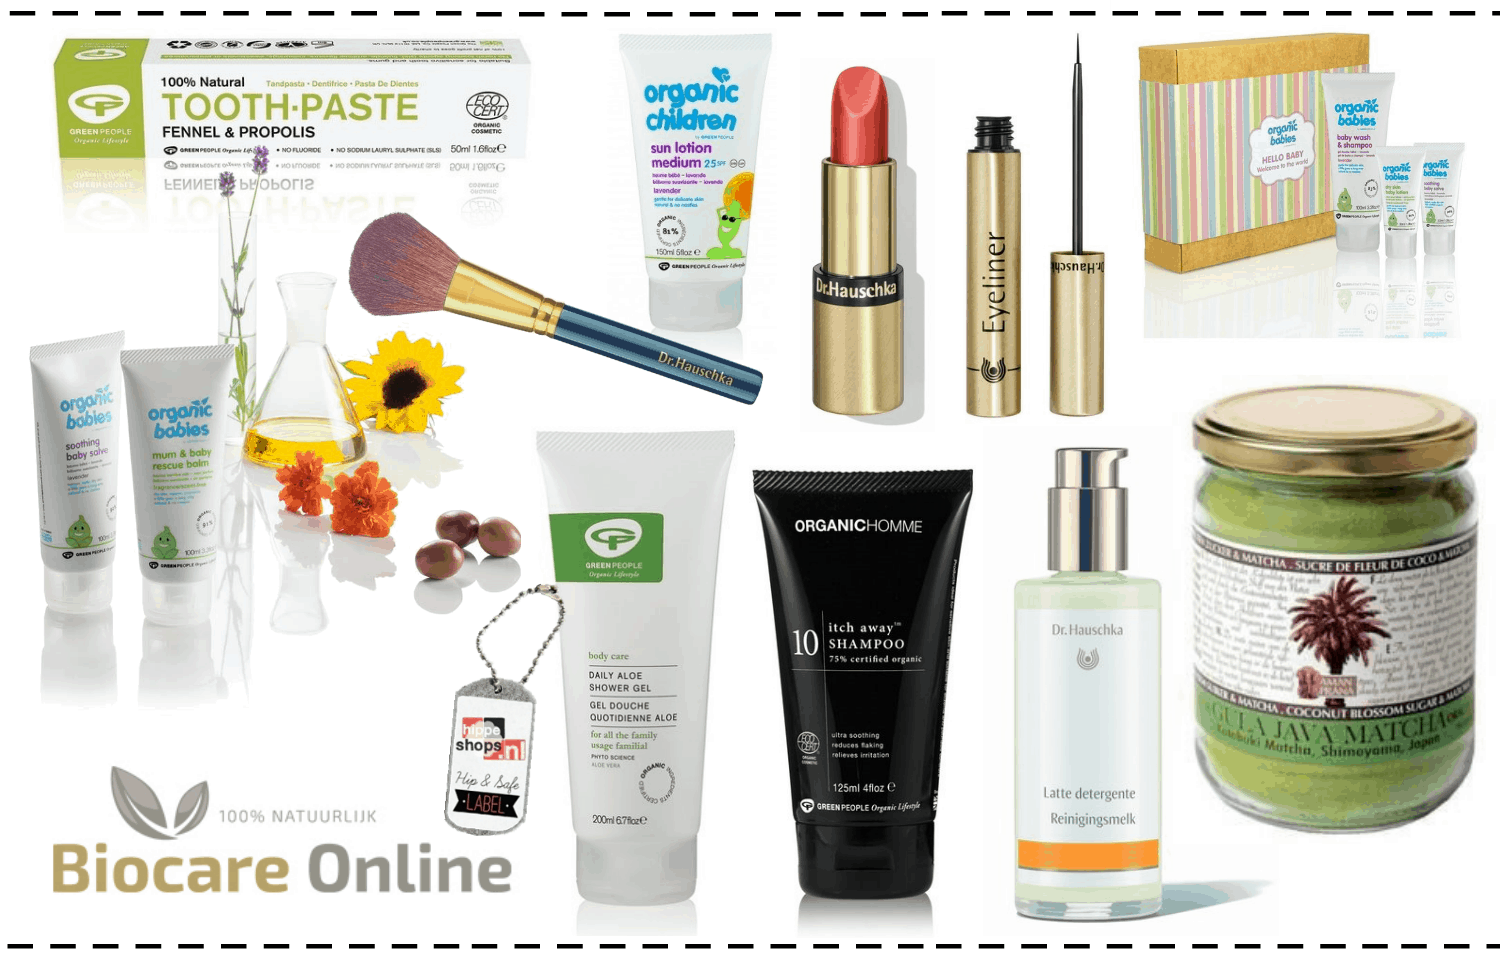 Biocare online – organic skincare & natural products